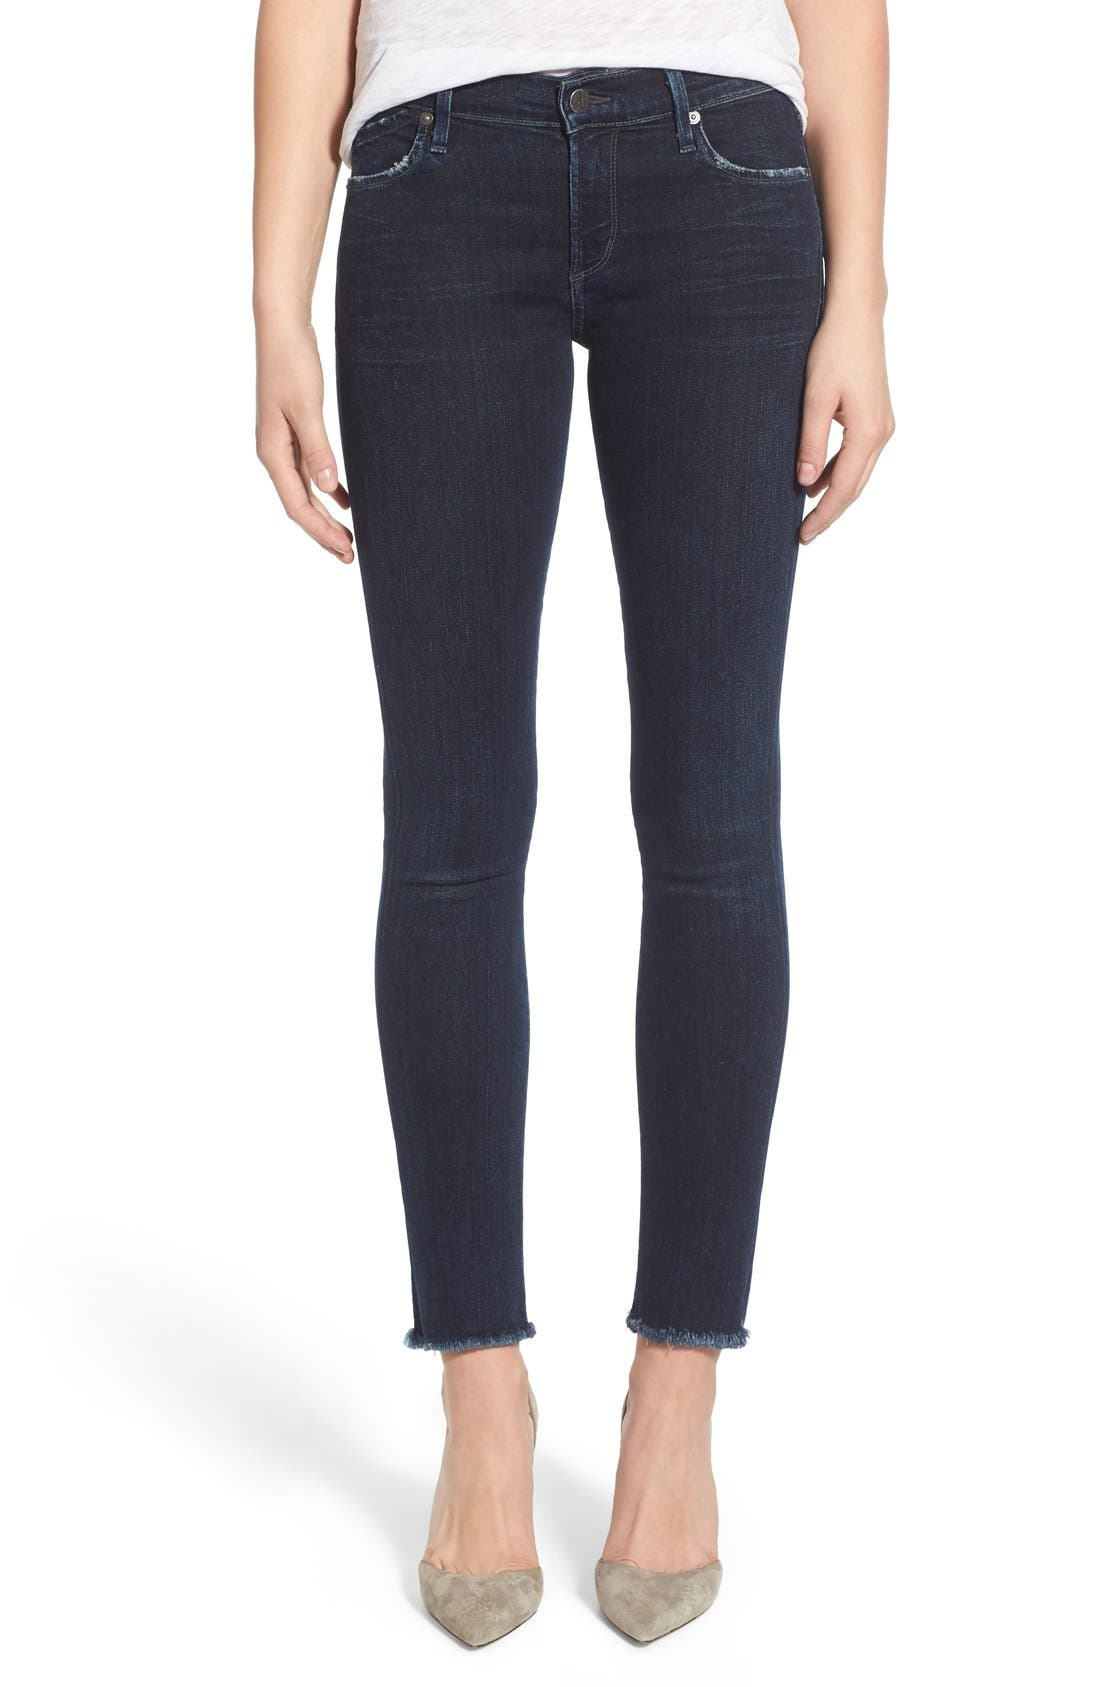 Alternate Image 1 Selected - Citizens of Humanity Cutoff Ankle Skinny Jeans (Boardwalk)